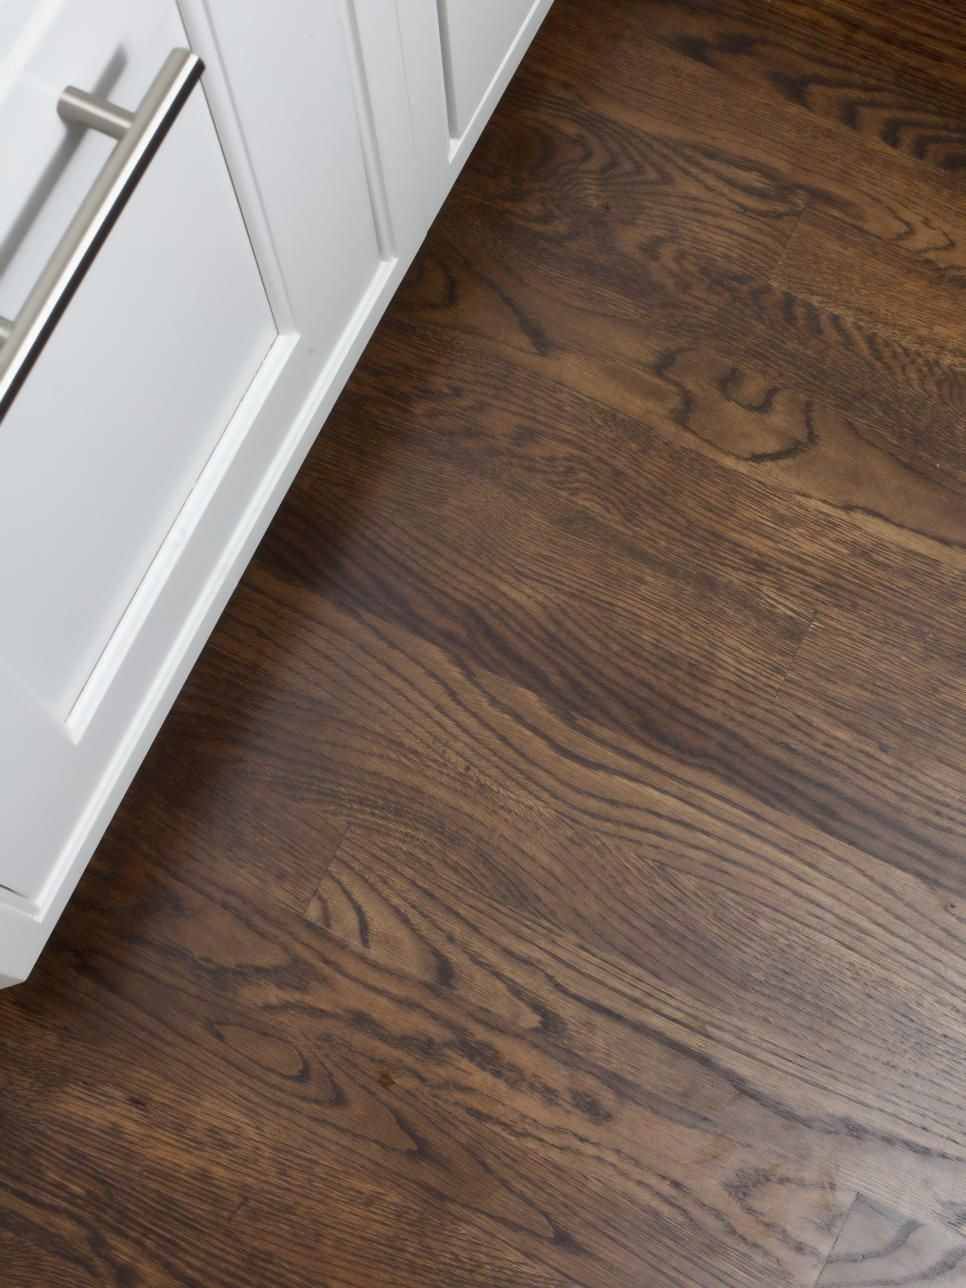 dark walnut hardwood floor stain of fun family focused baking kitchen floors pinterest regarding instead of ripping out the existing wood floor the uneven floors were leveled sanded